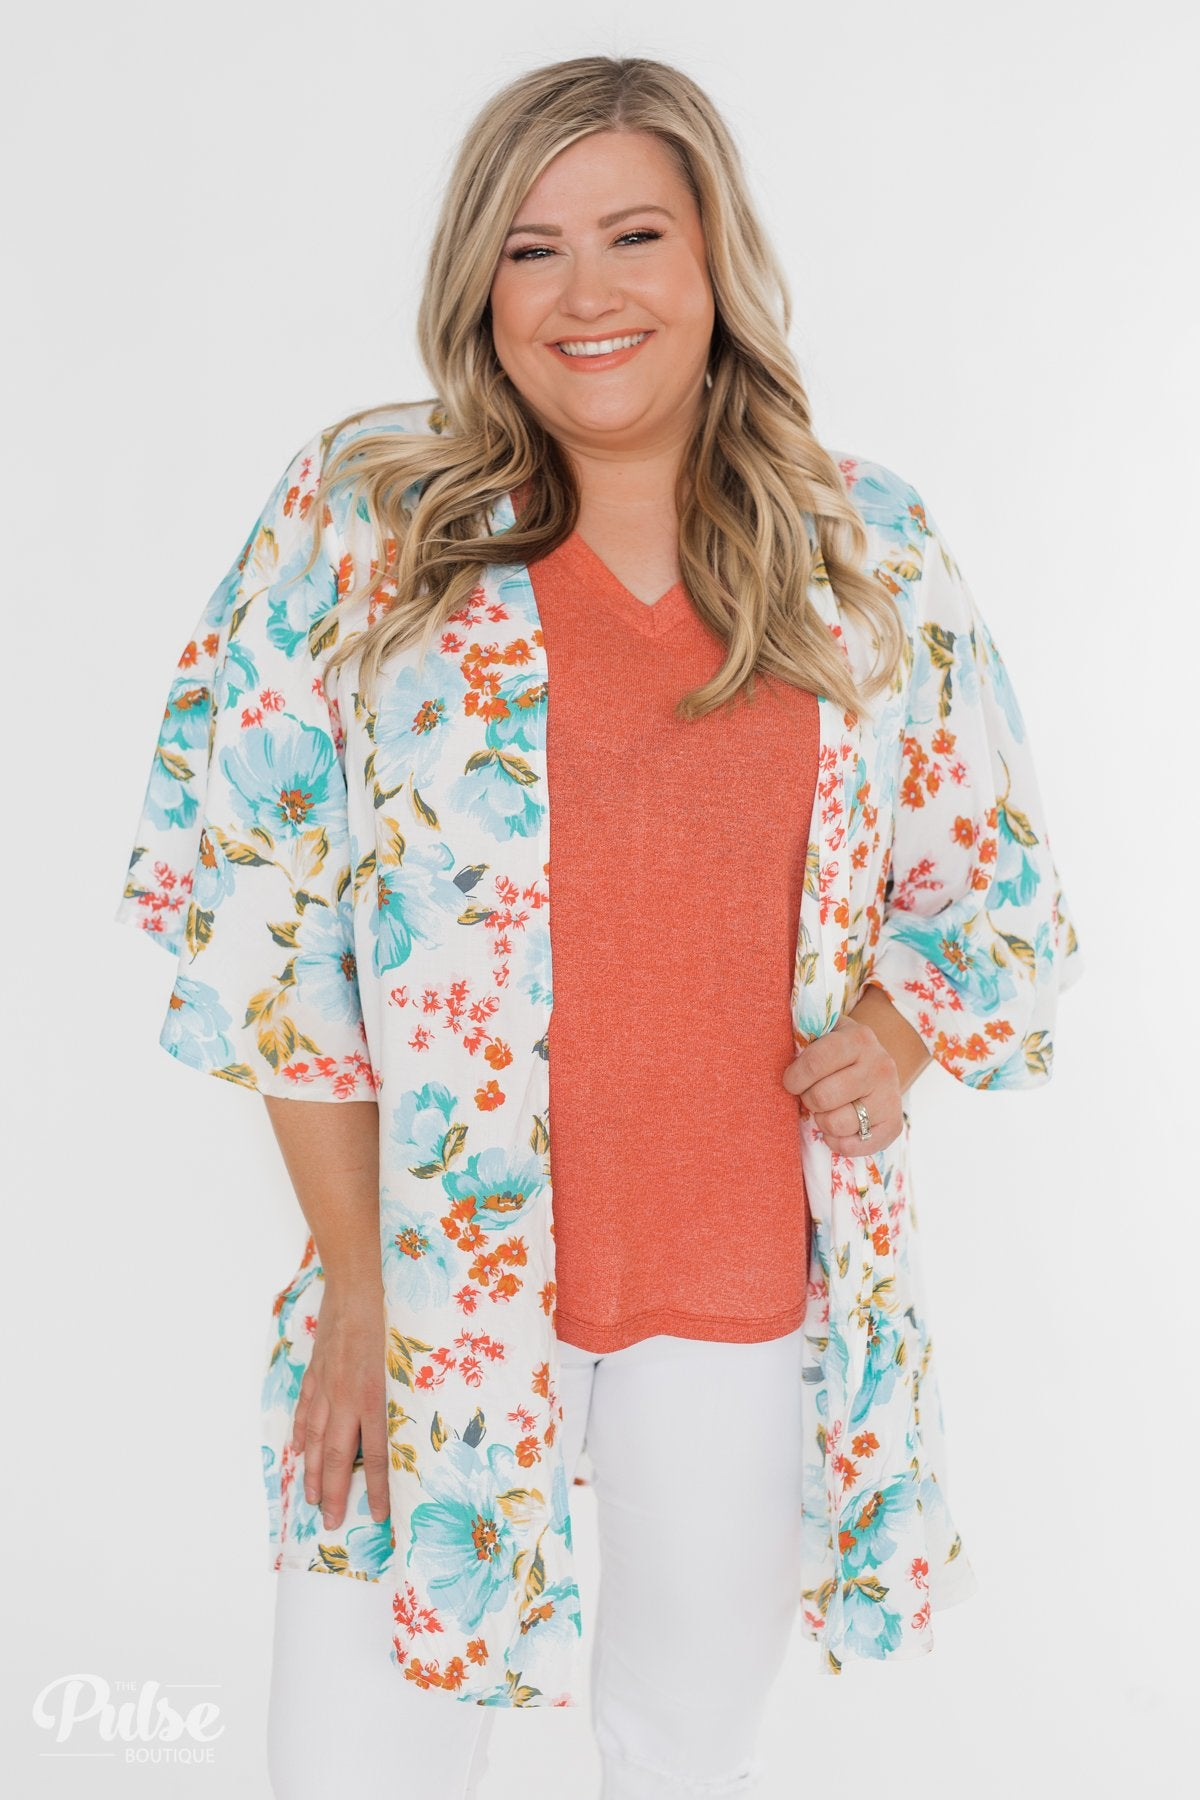 Sunshine In My Soul Floral Kimono- Ivory